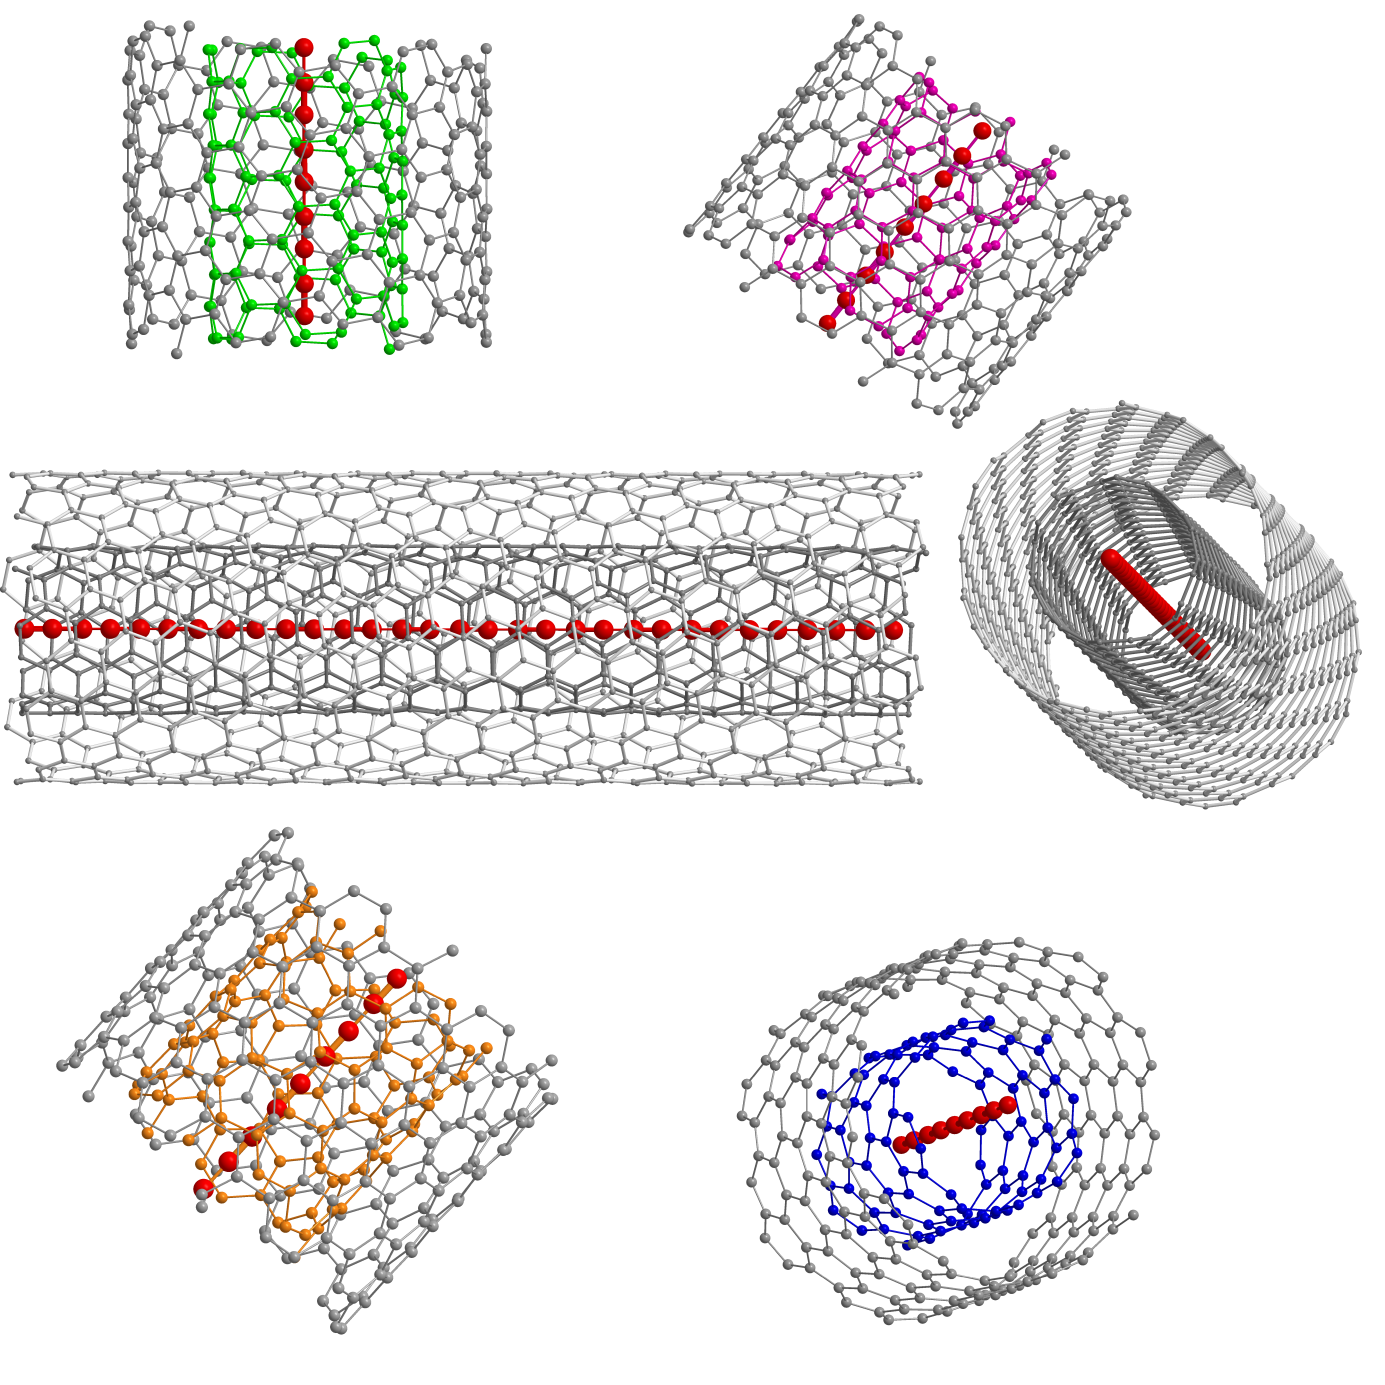 Researchers present a direct first proof of stable, ultra-long 1D carbon chains